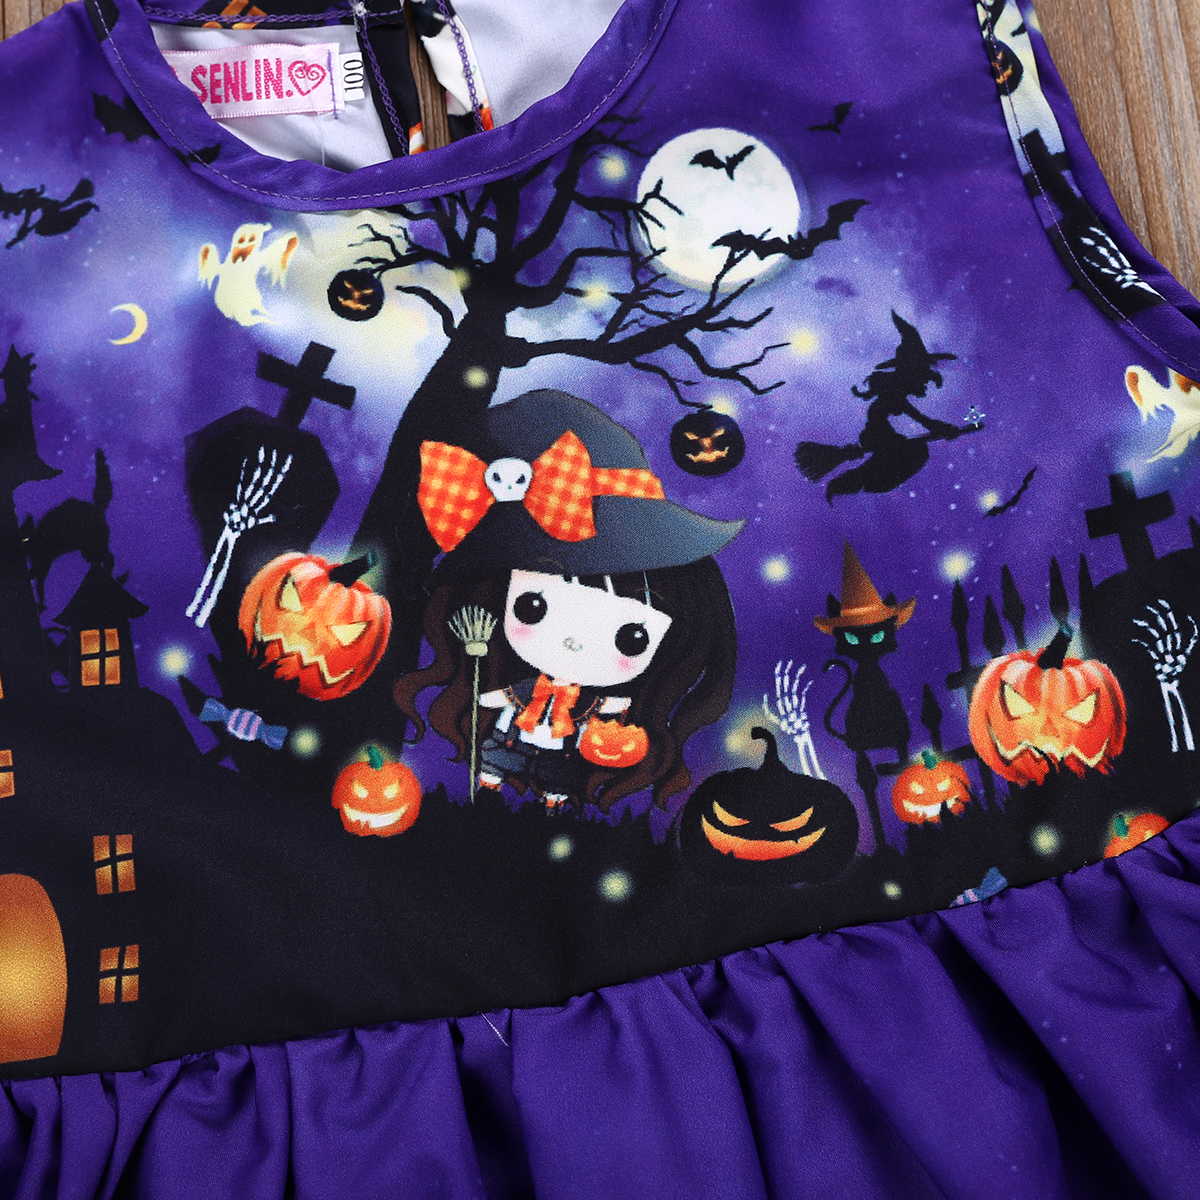 b8660fe2107f 2 6T Halloween costume for kids Toddler Baby Girl Party Cartoon pumpkin  print Princess Dress Vestidos Cute Infantil Costume-in Dresses from Mother  & Kids on ...